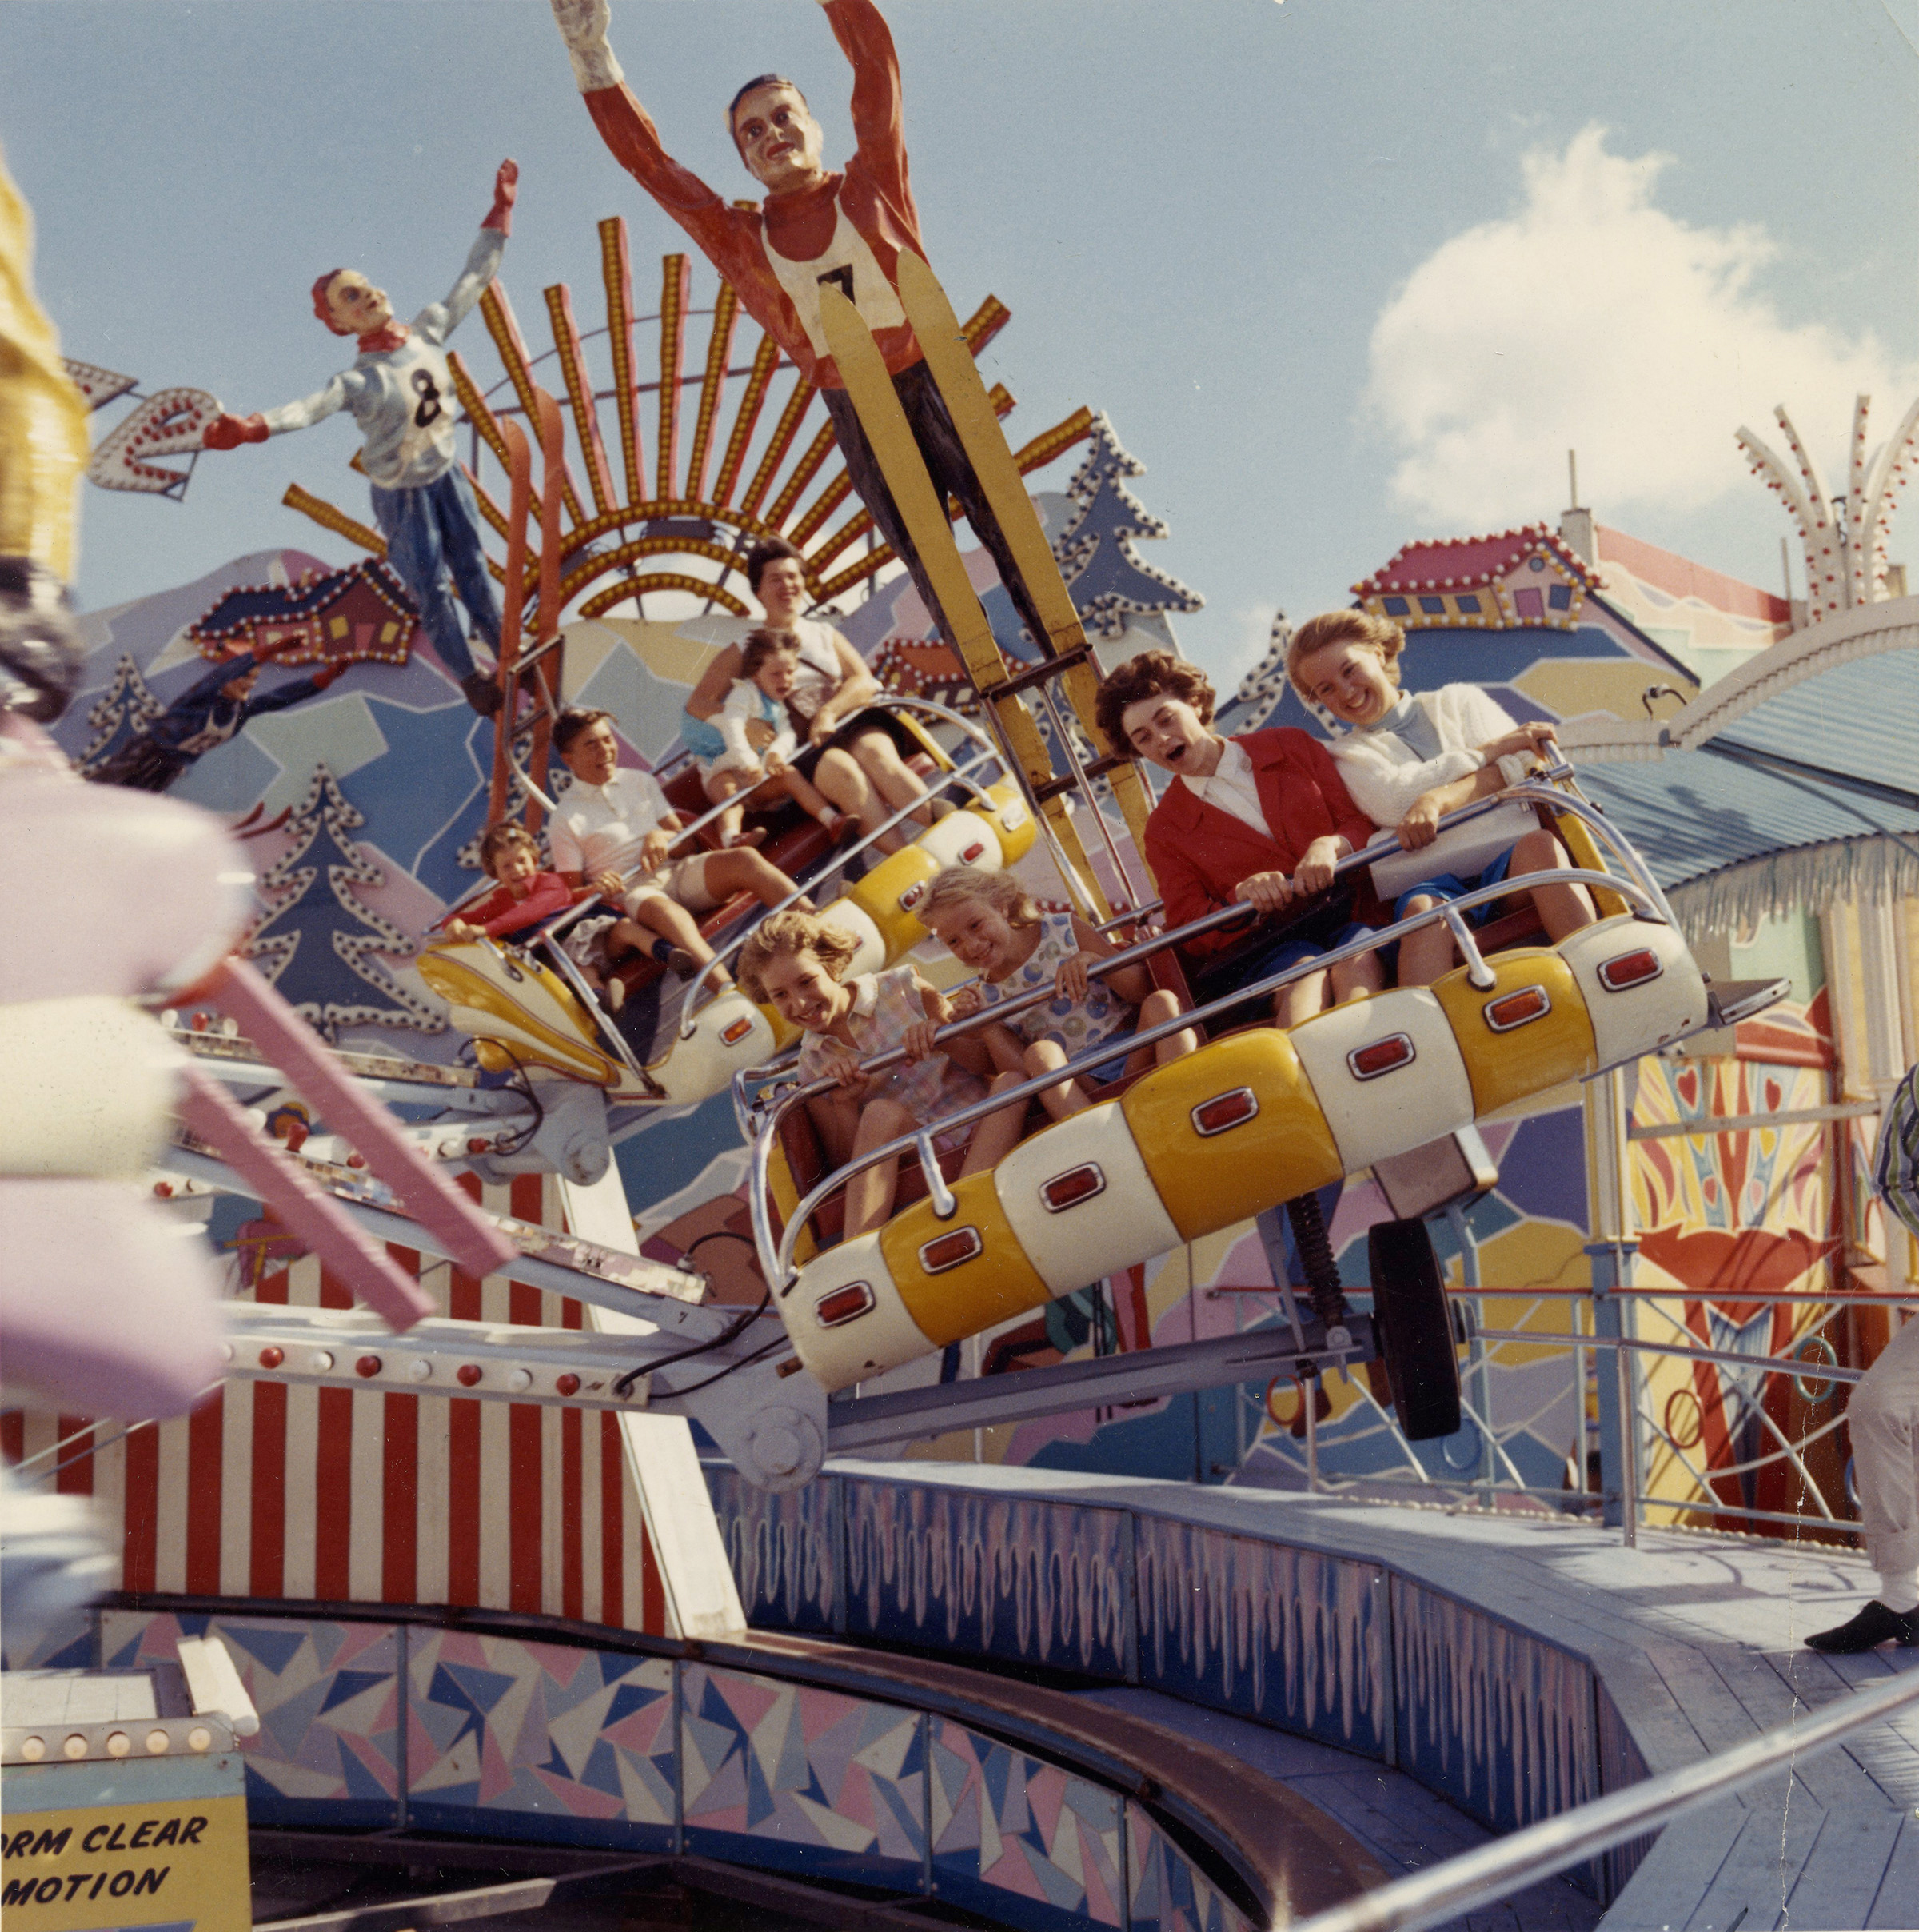 Midway Thrills, [Date Unknown], Canadian National Exhibition Archives, Slides Midway 40-8. Courtesy of the CNEA